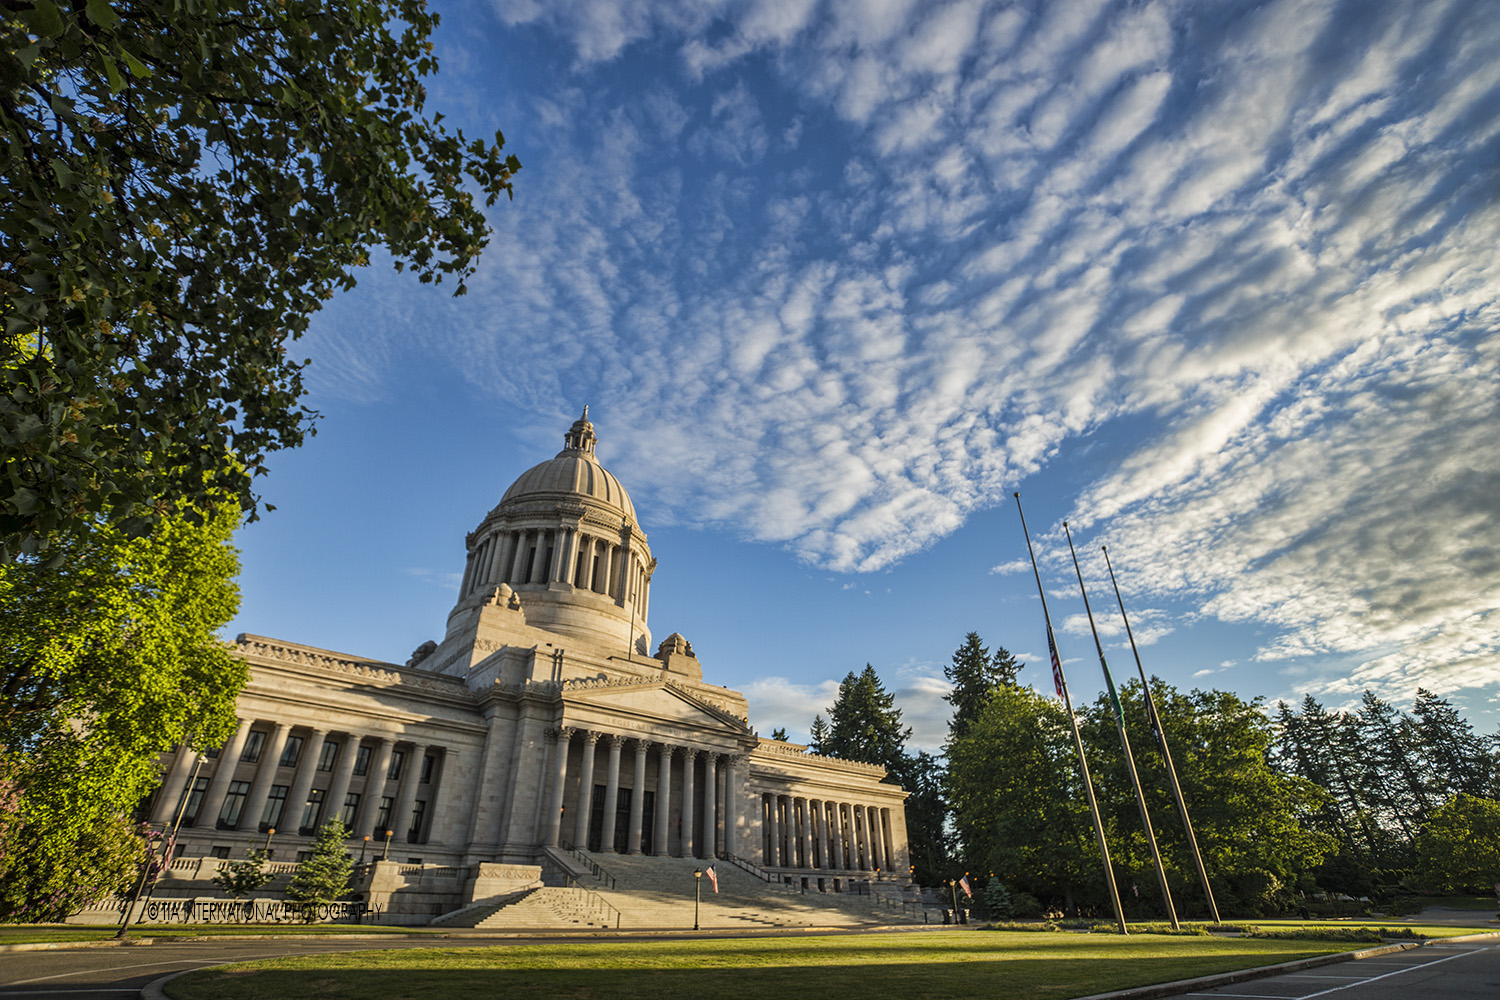 Washington State Capitol, Olympia, Washington.